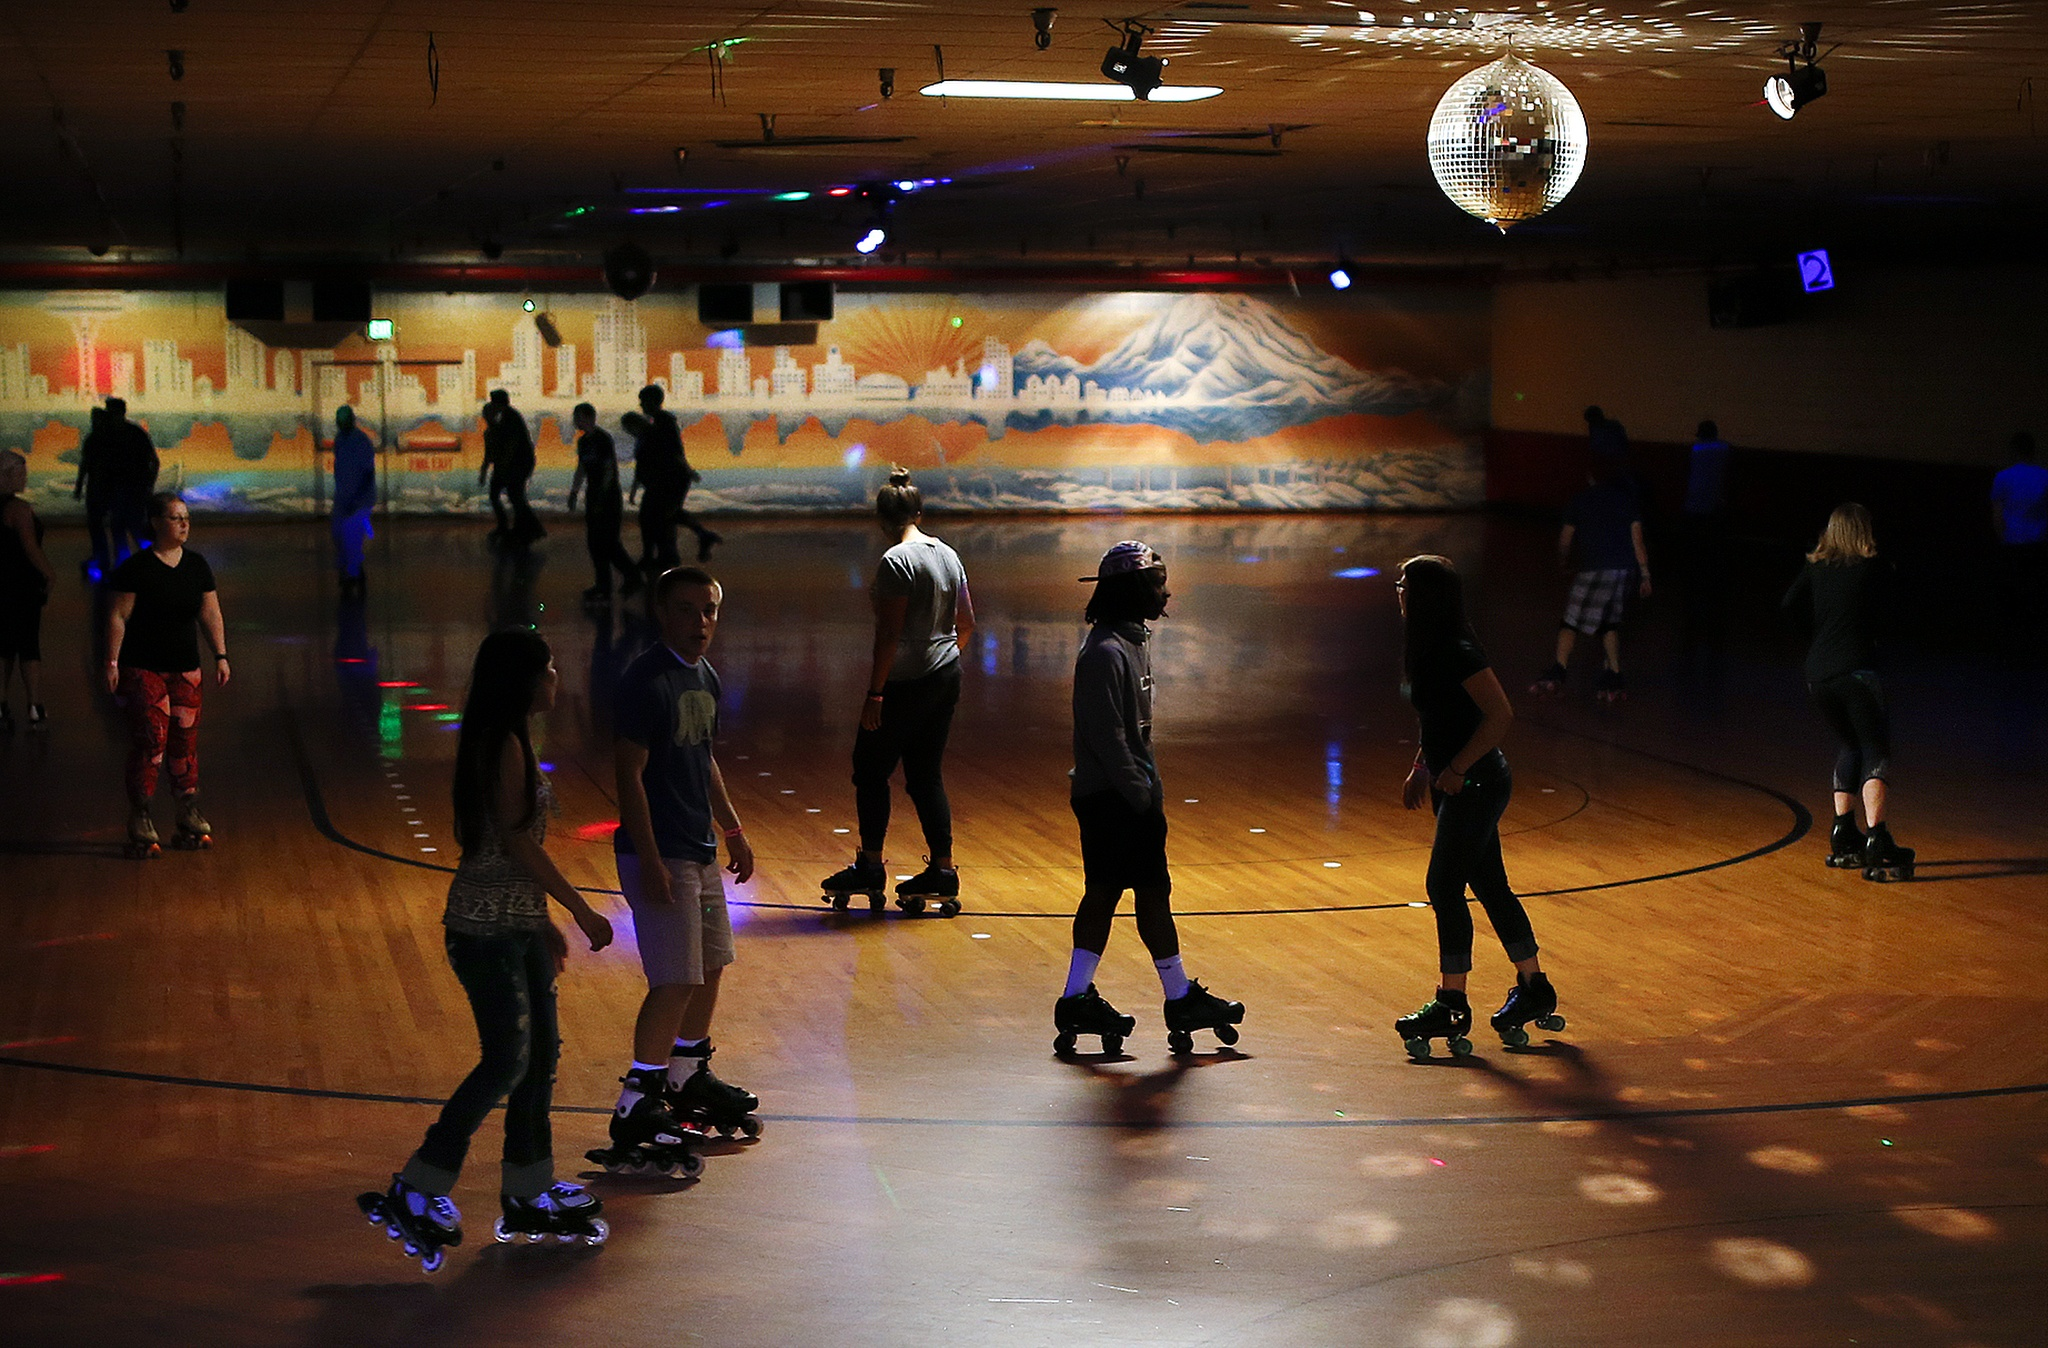 Skaters roll across the floor during a public session at lynnwood bowl and skate on thursday